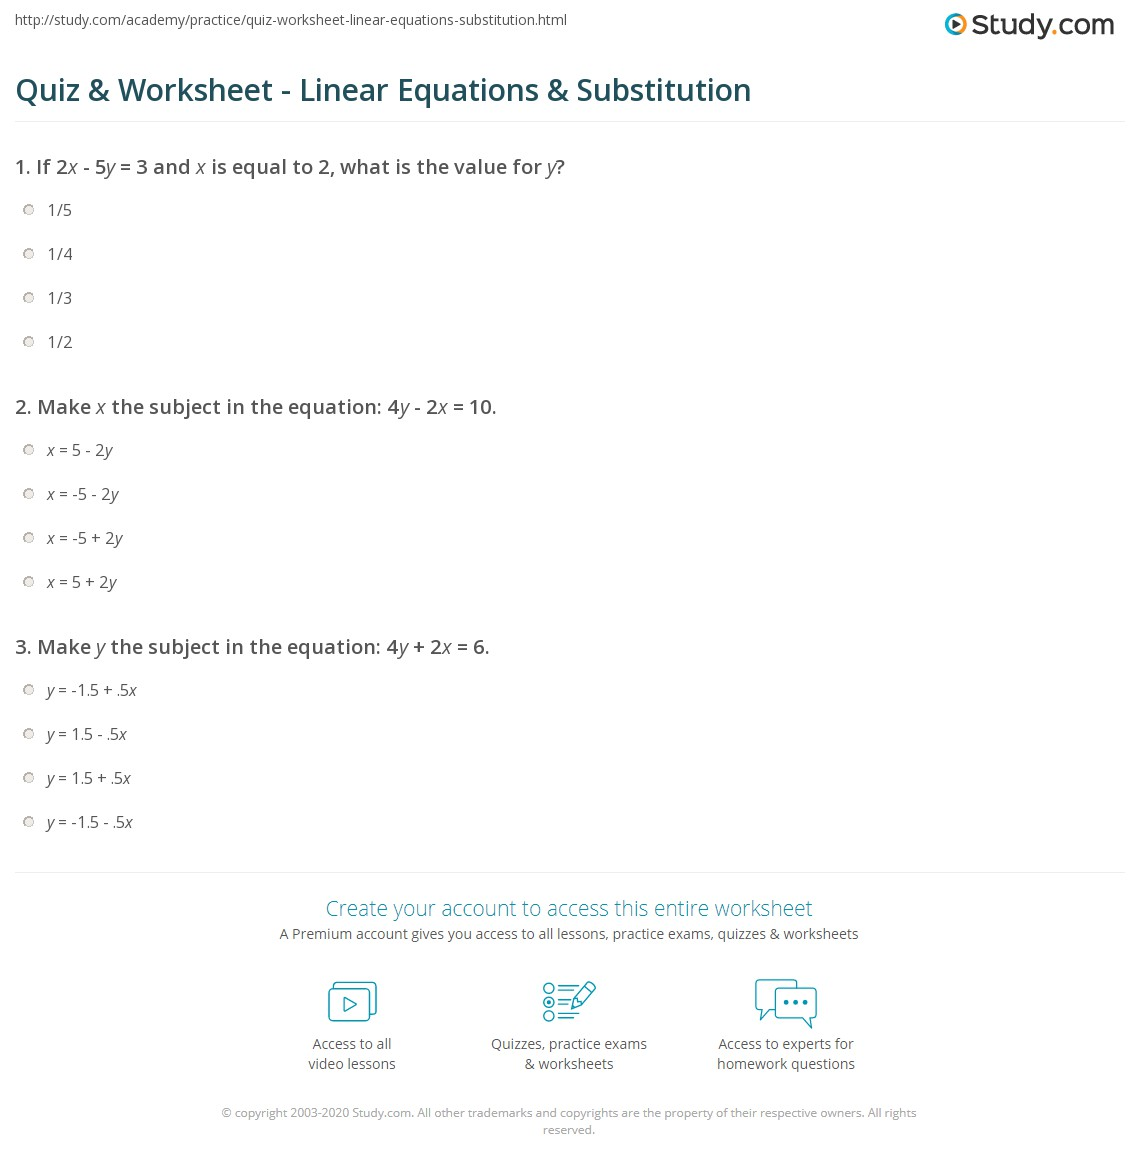 Quiz Worksheet Linear Equations Substitution Study